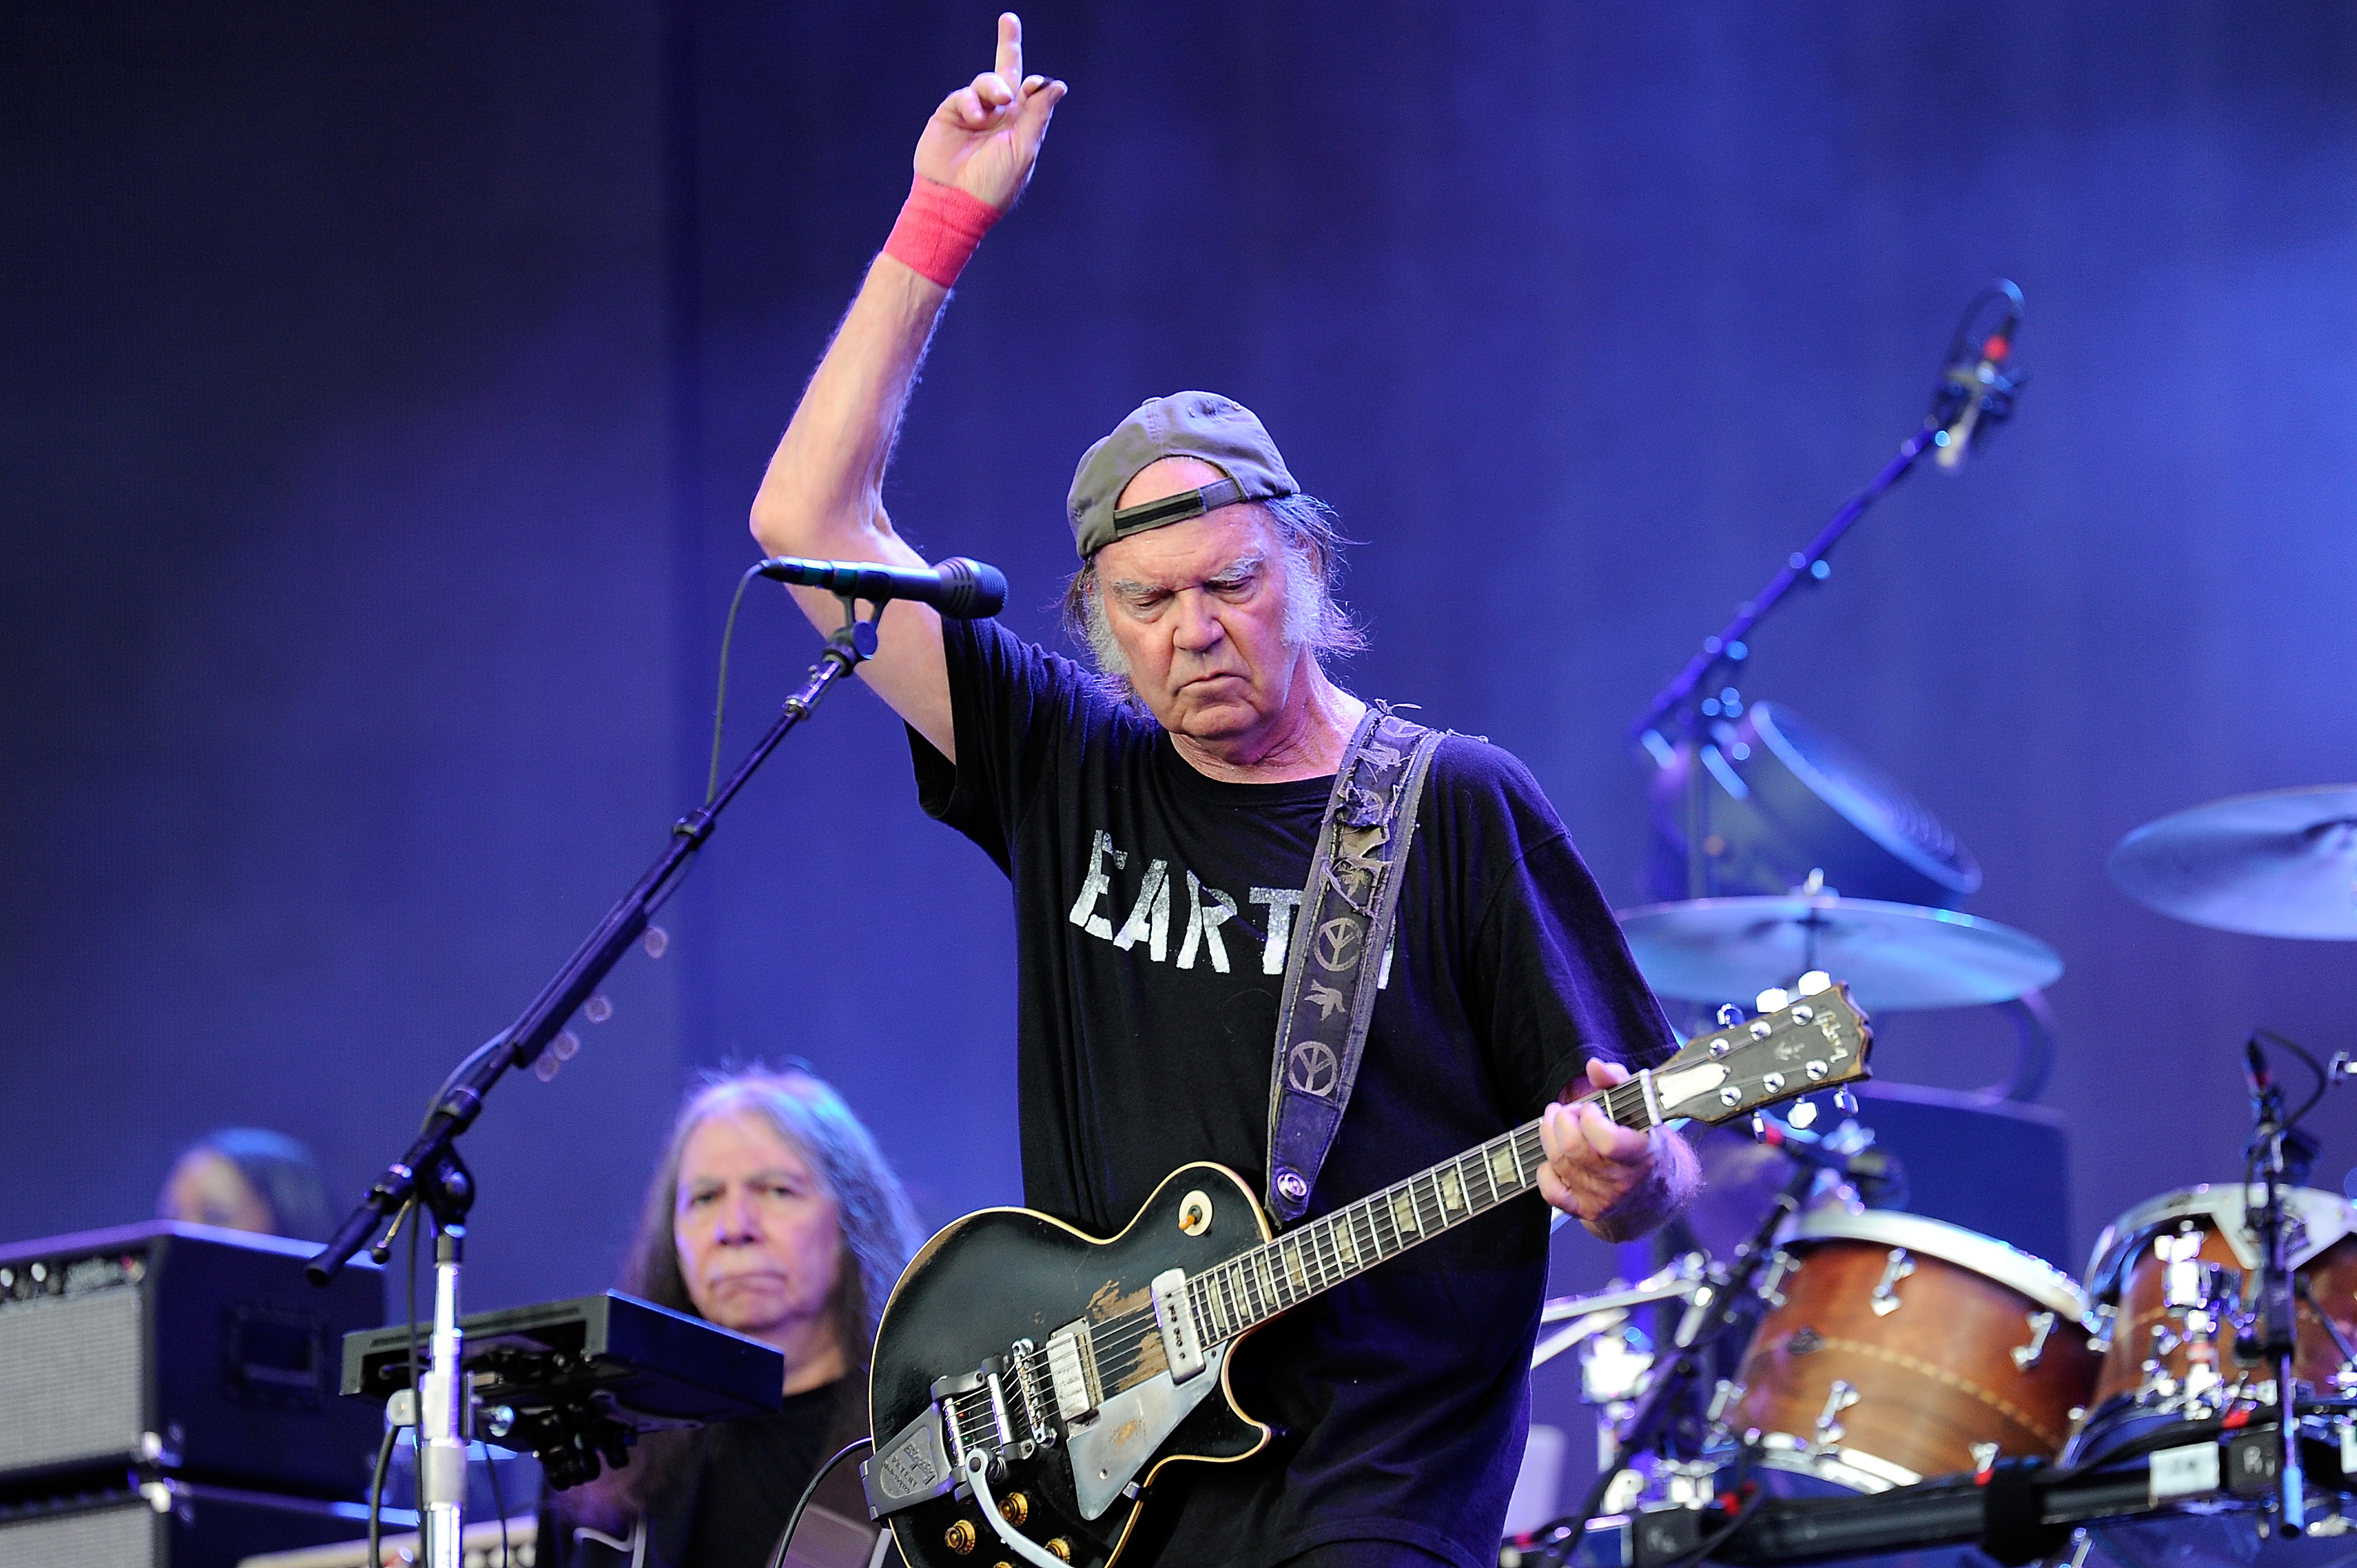 LONDON, ENGLAND - JULY 12:  Neil Young performs with Crazy Horse on stage at British Summer Time Festival at Hyde Park on Jul